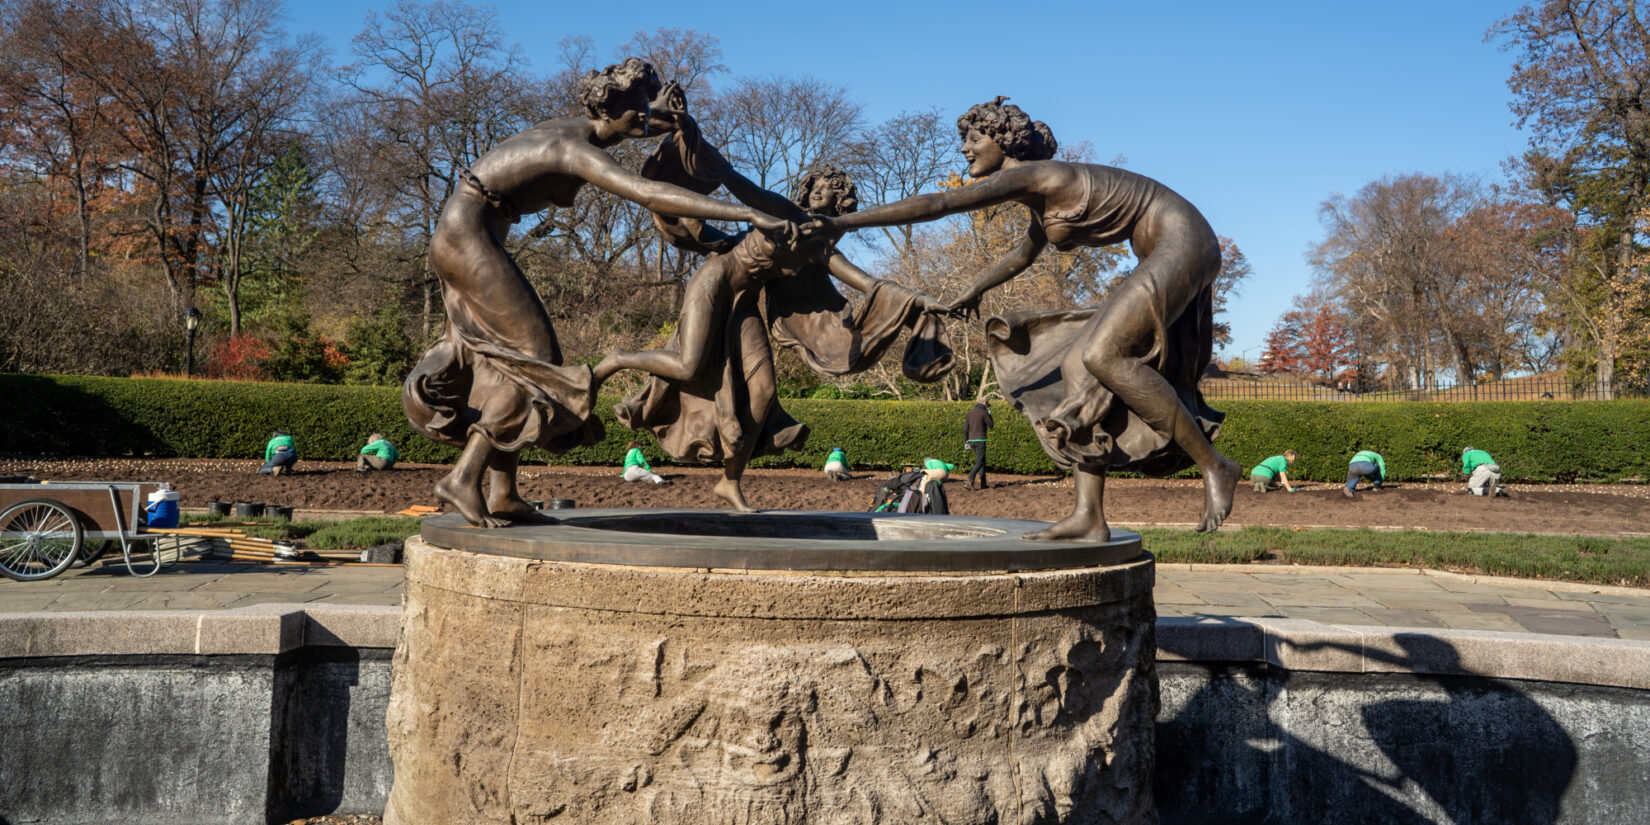 With the Untermeyer Fountain in the foreground, Park volunteers are seen working the flowerbeds.